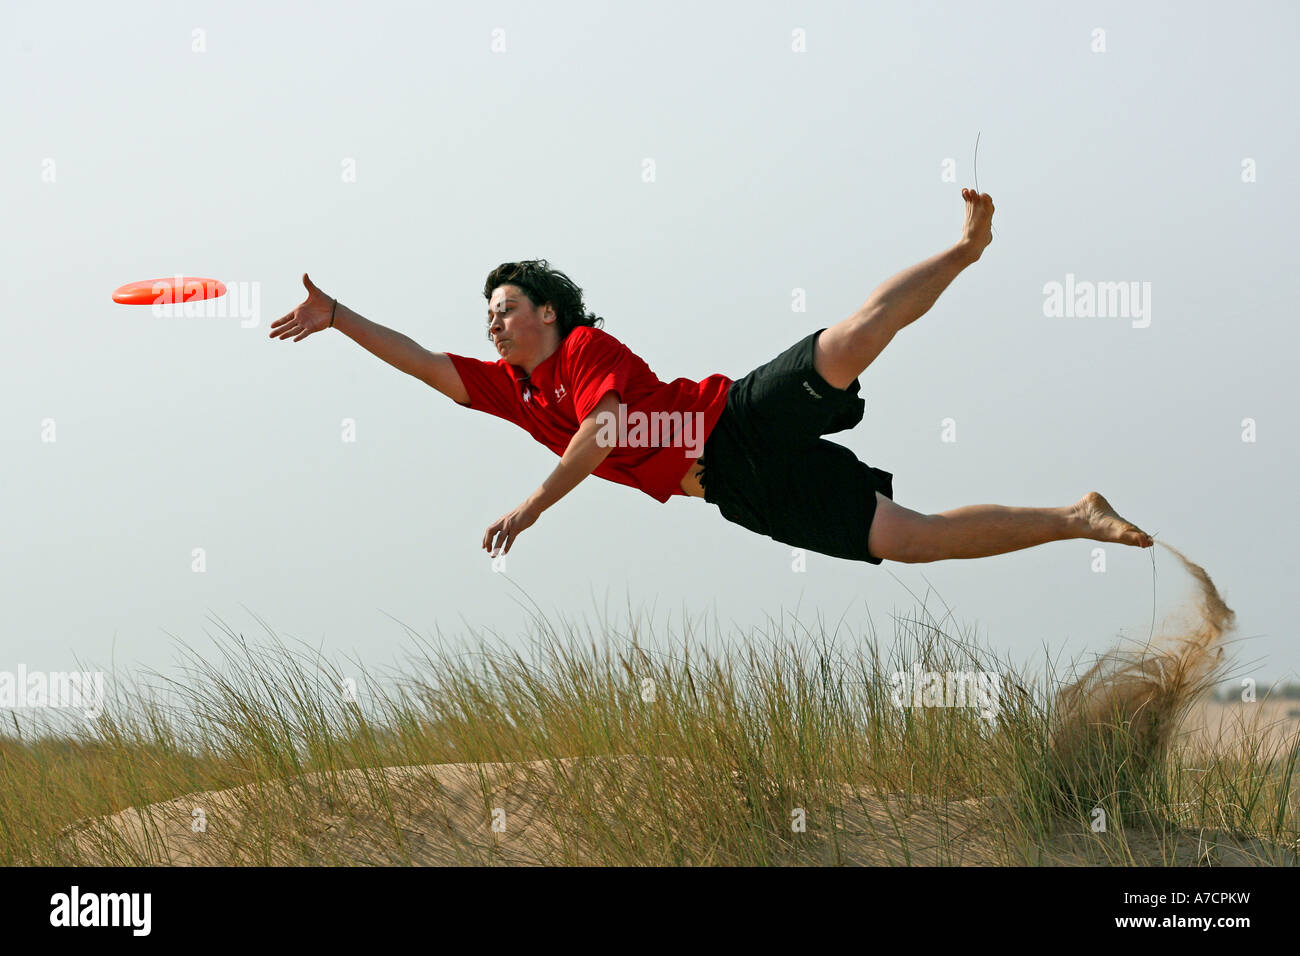 Man In Mid Air Takes Part In Extreme Sport Of Ultimate